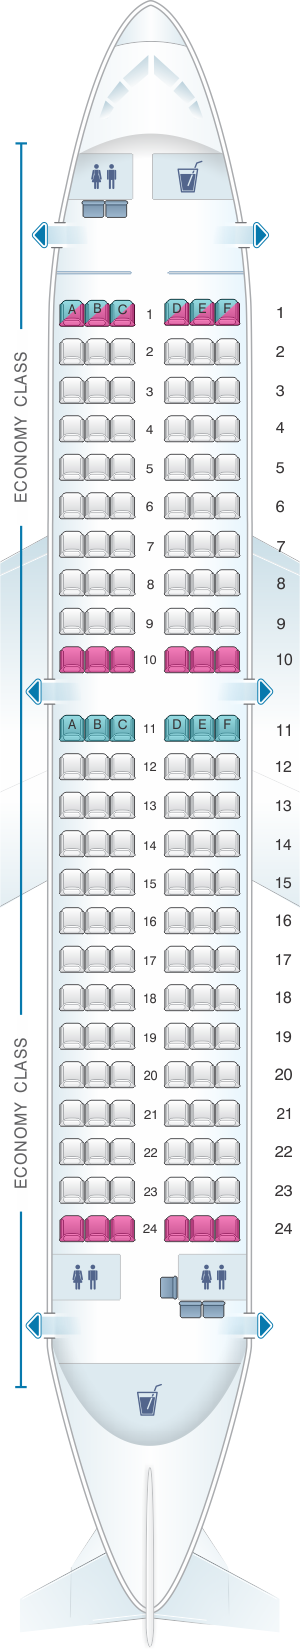 Seat map for Adria Airways Airbus A319